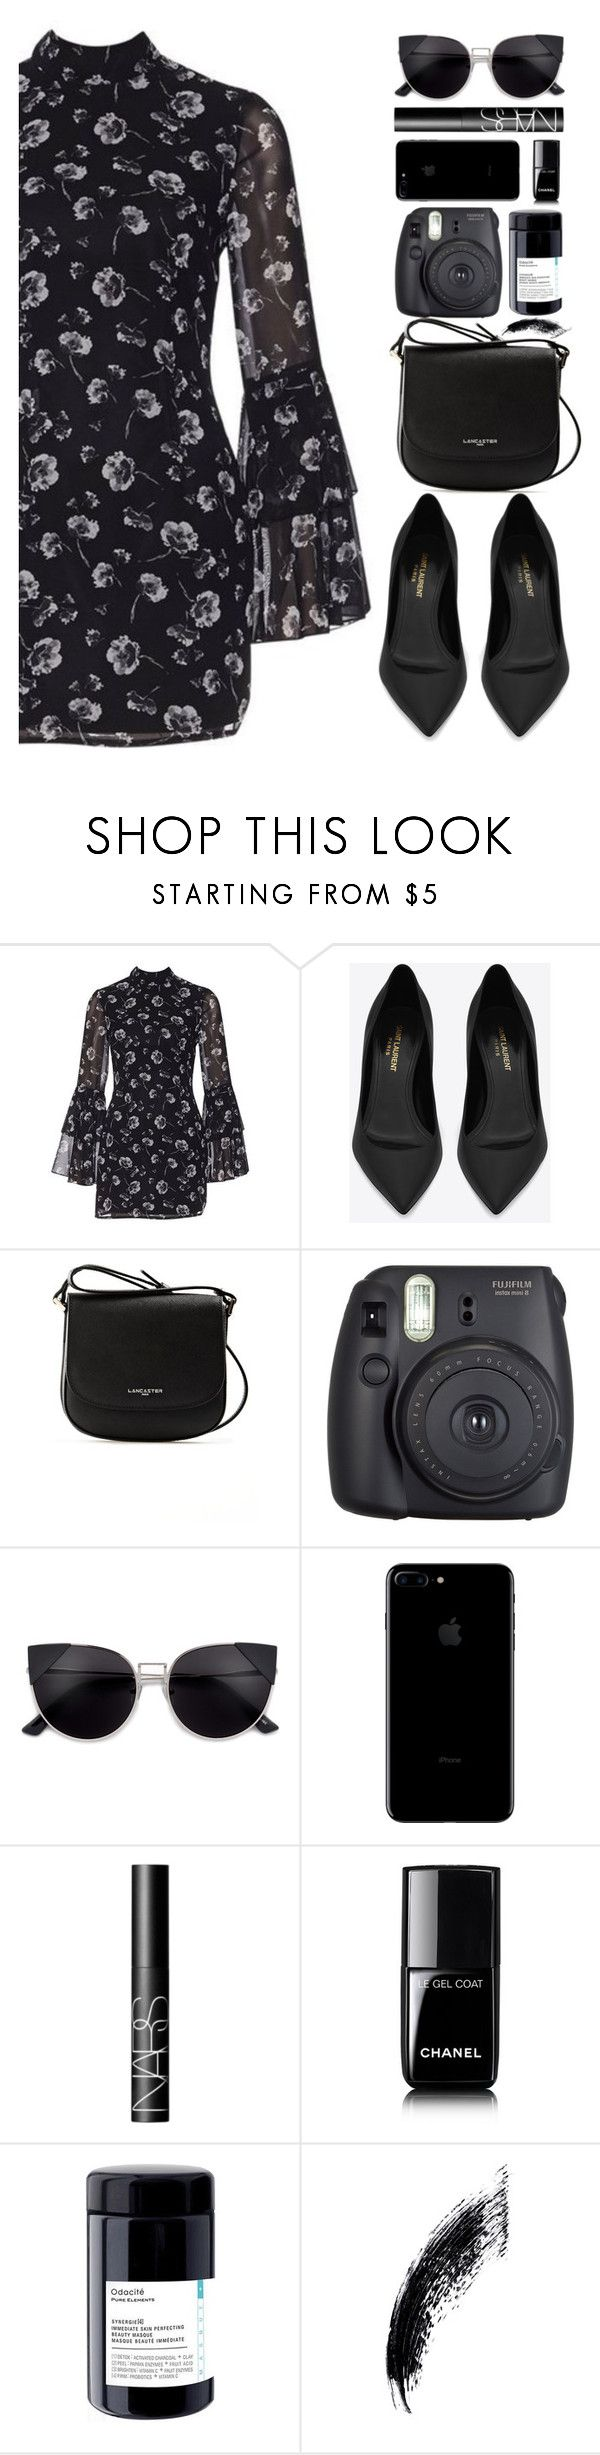 """""""Untitled #498"""" by cherryprincessannie ❤ liked on Polyvore featuring Yves Saint Laurent, Lancaster, Fuji, NARS Cosmetics and Chanel"""